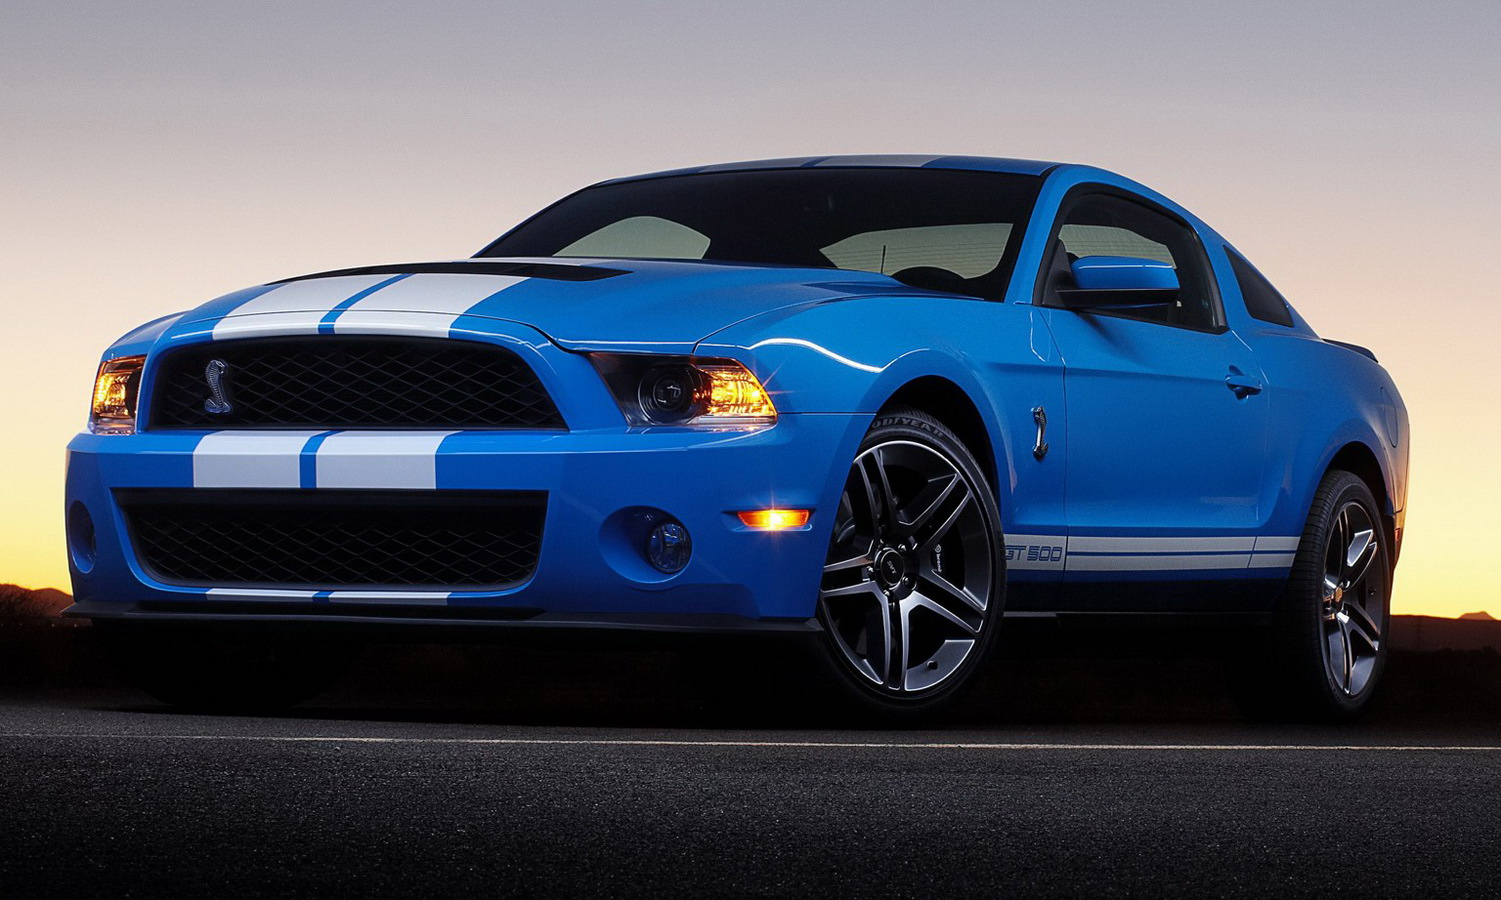 2015 Ford Mustang Shelby Gt500 Computer Wallpaper 1501x900